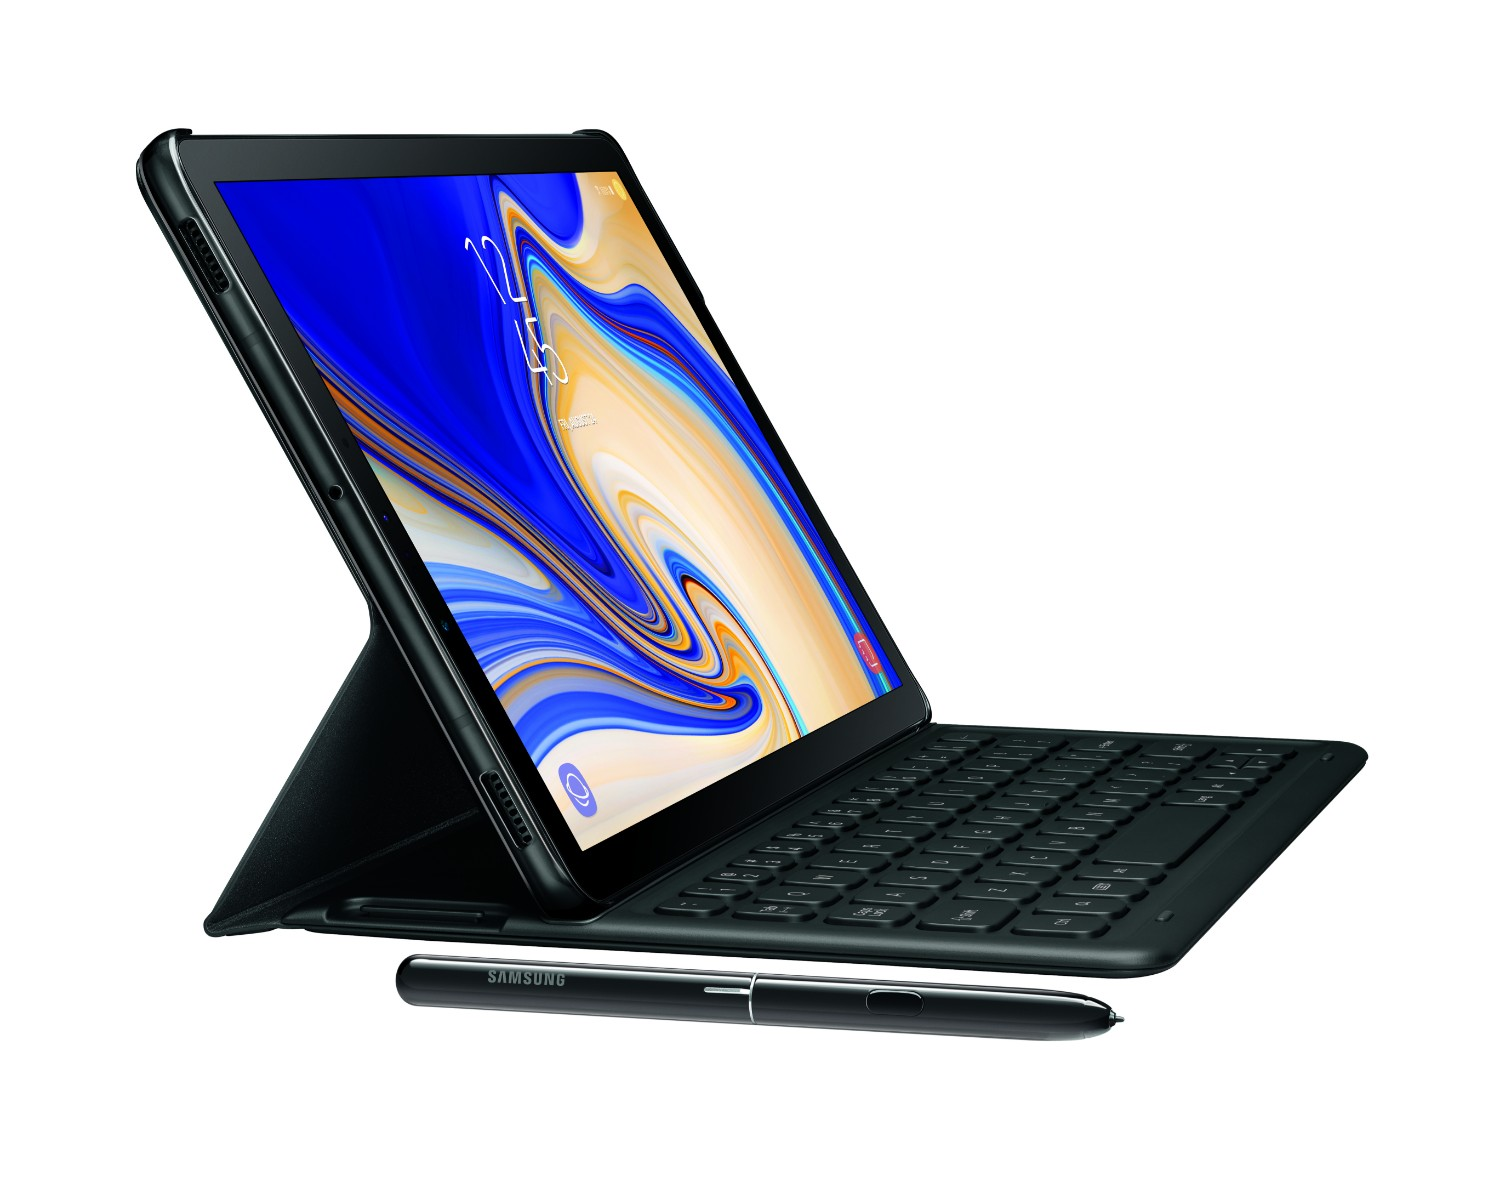 Samsung makes the Galaxy Tab S4 official